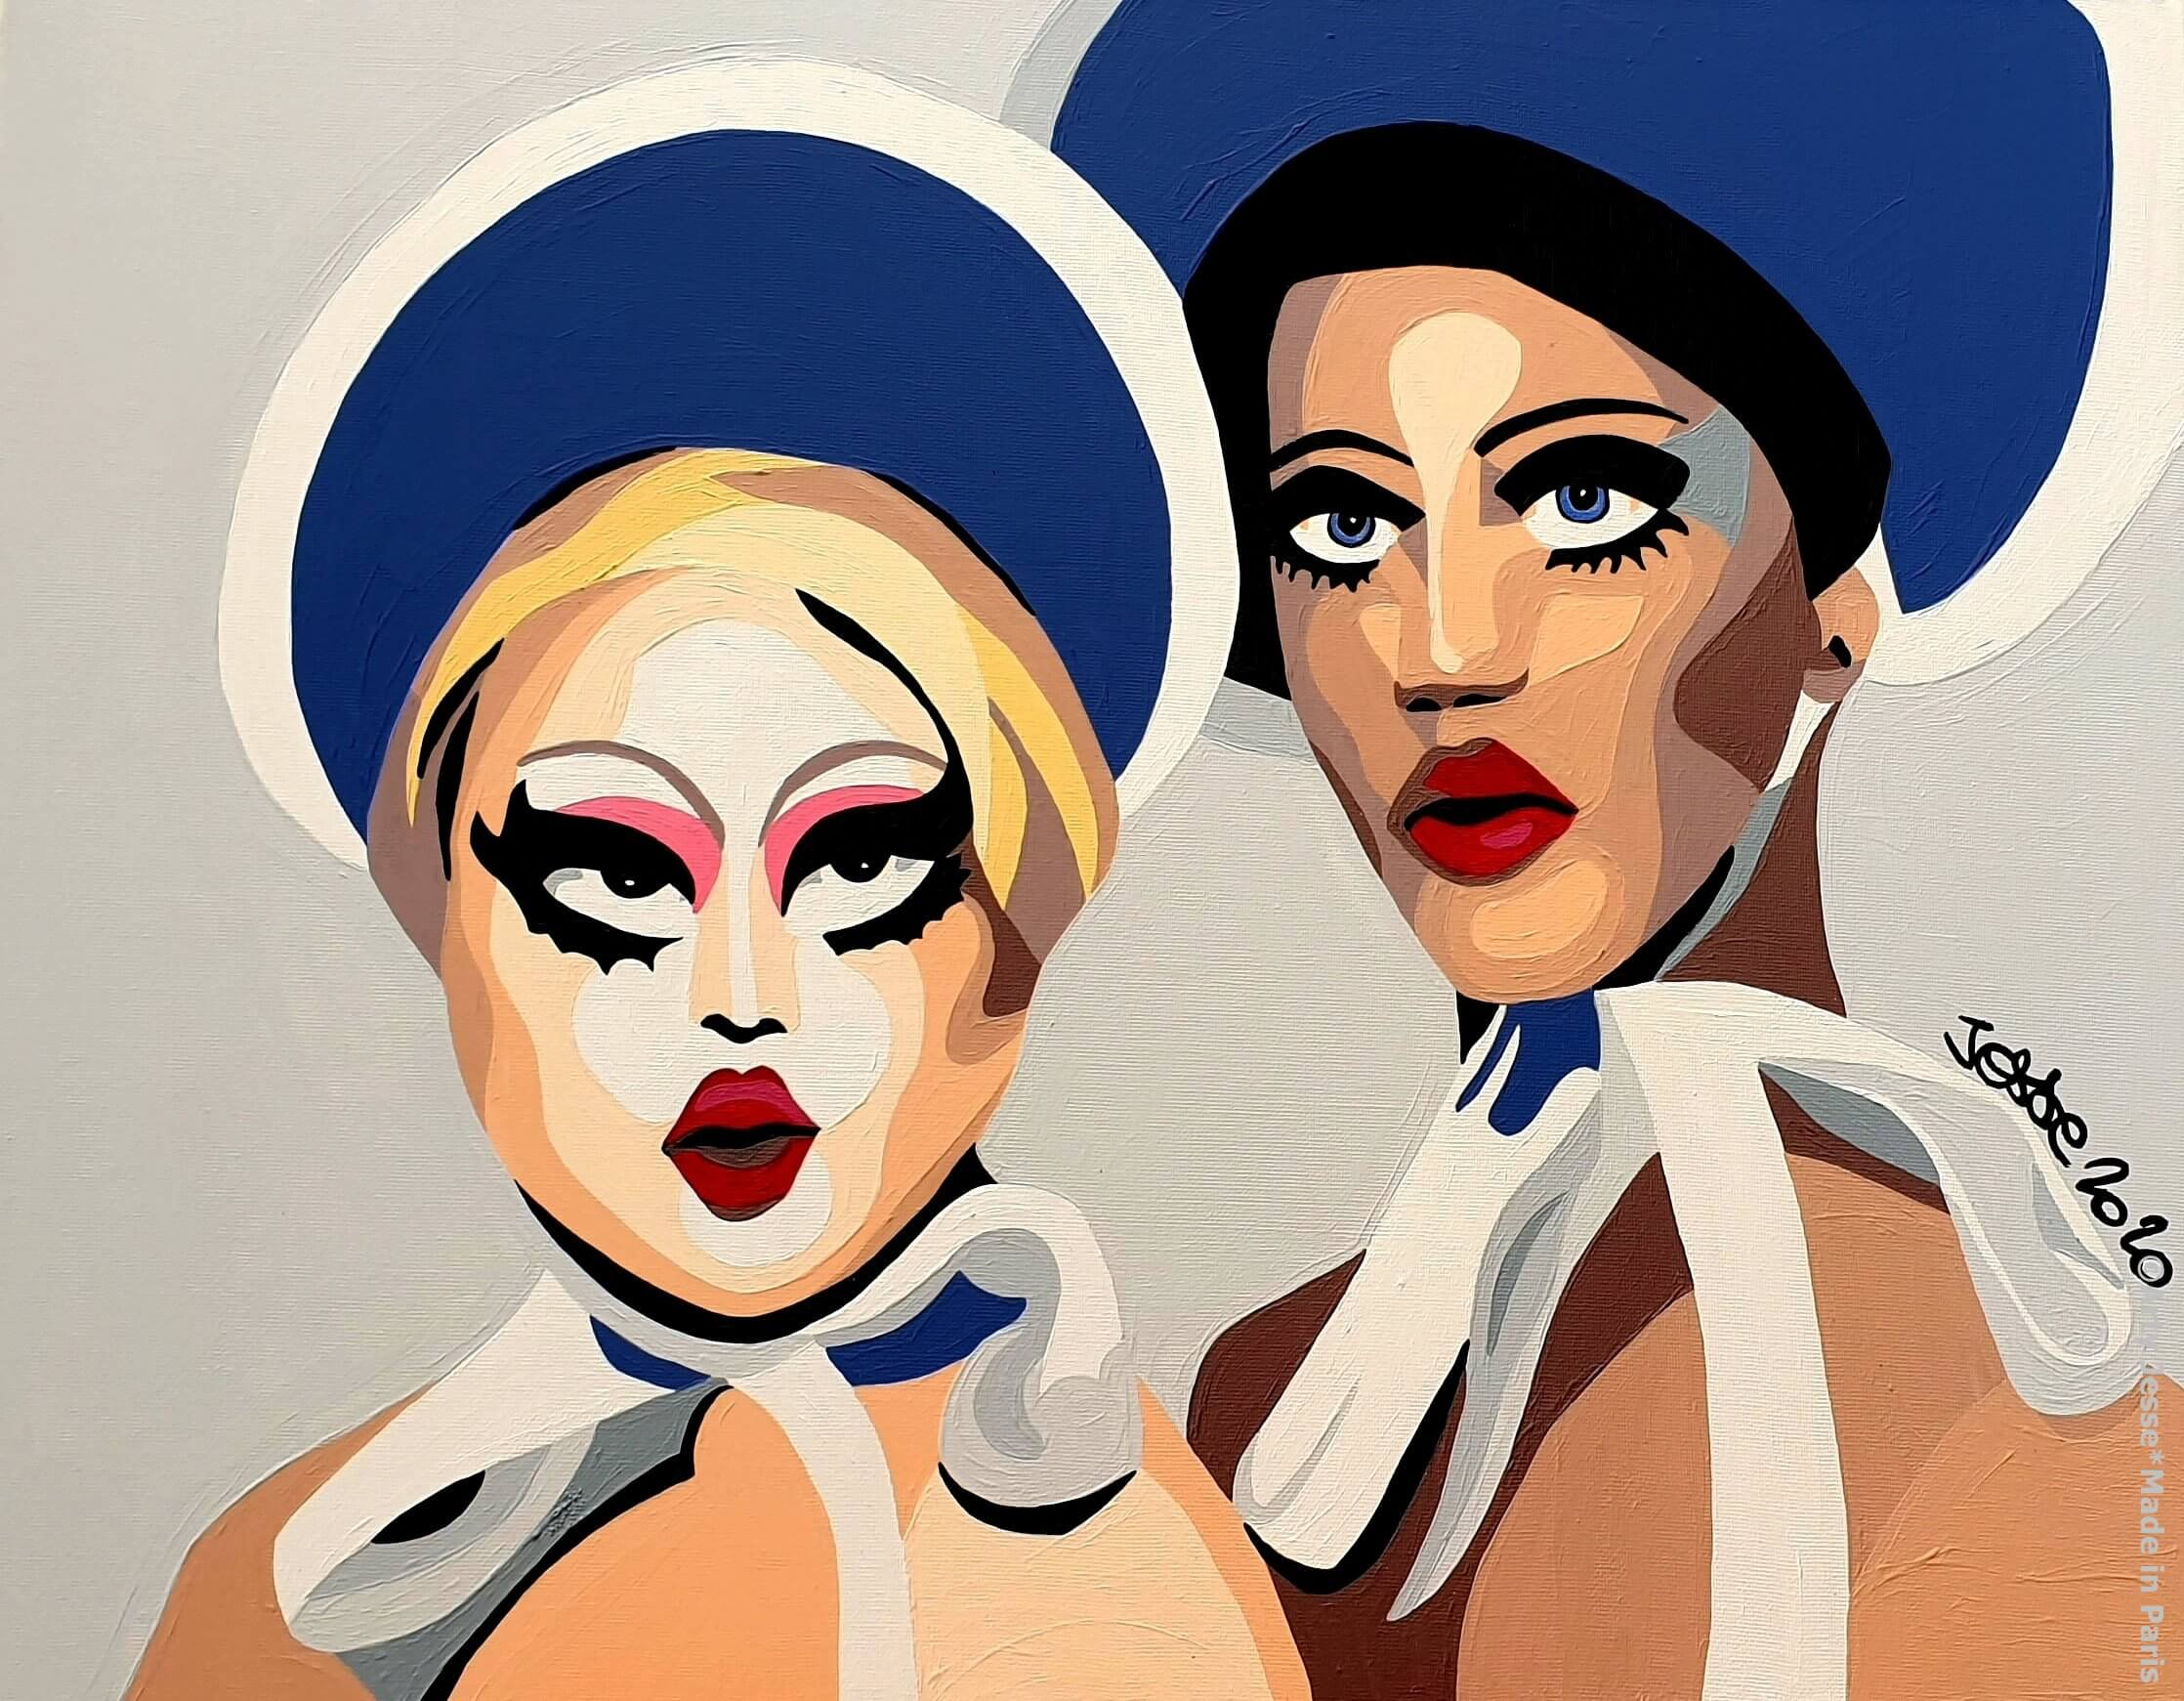 artiste peintre paris, circus art, drag queen, kim chi, naomi smalls, drag art